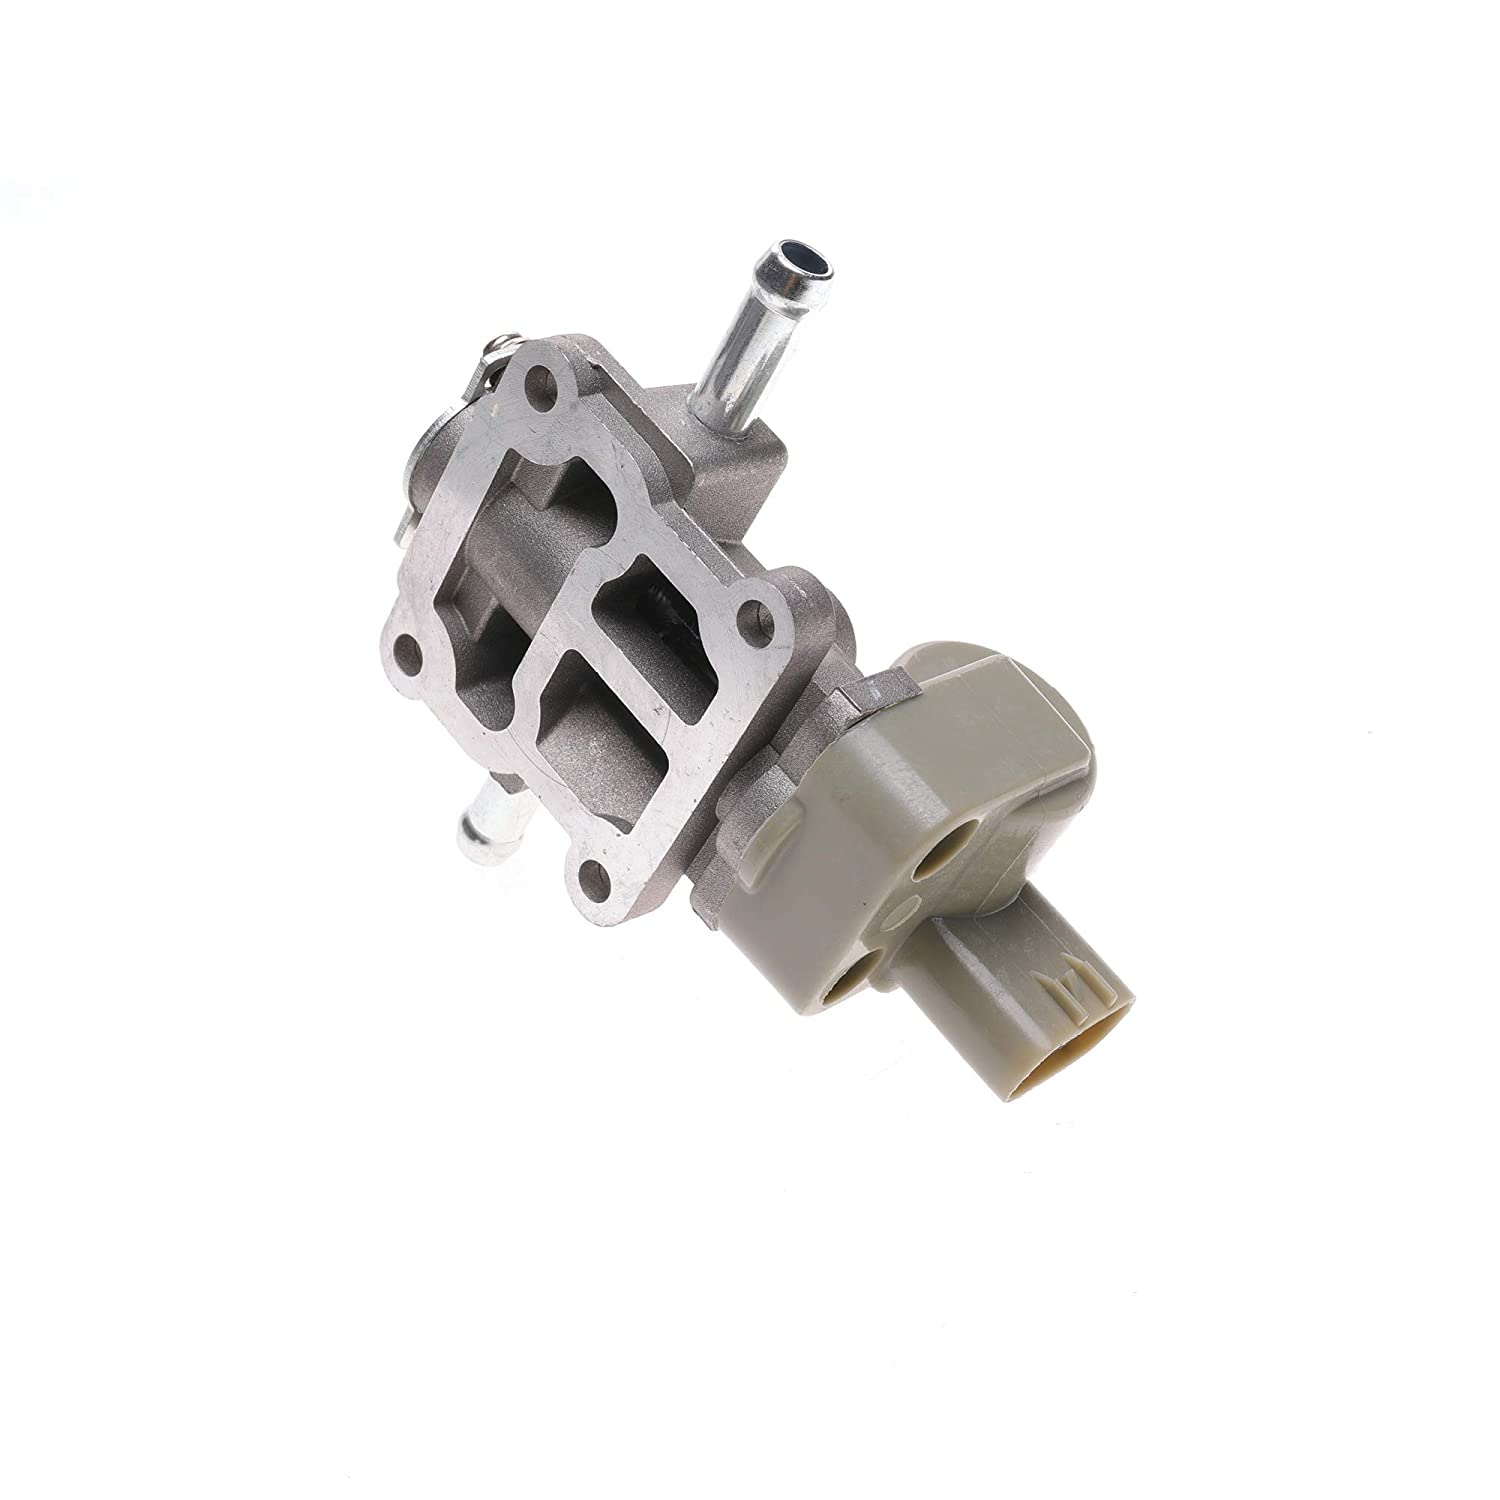 DEF Idle Air Control Valve IAC Replaces 22270-62050 1903-310313 310313 13451034 AC197 for Toyota Tacoma 1997-2004 Toyota 4Runner 1996-2000 V6-3.4L Toyota T100 1997-1998 Toyota Tundra 2000-2003